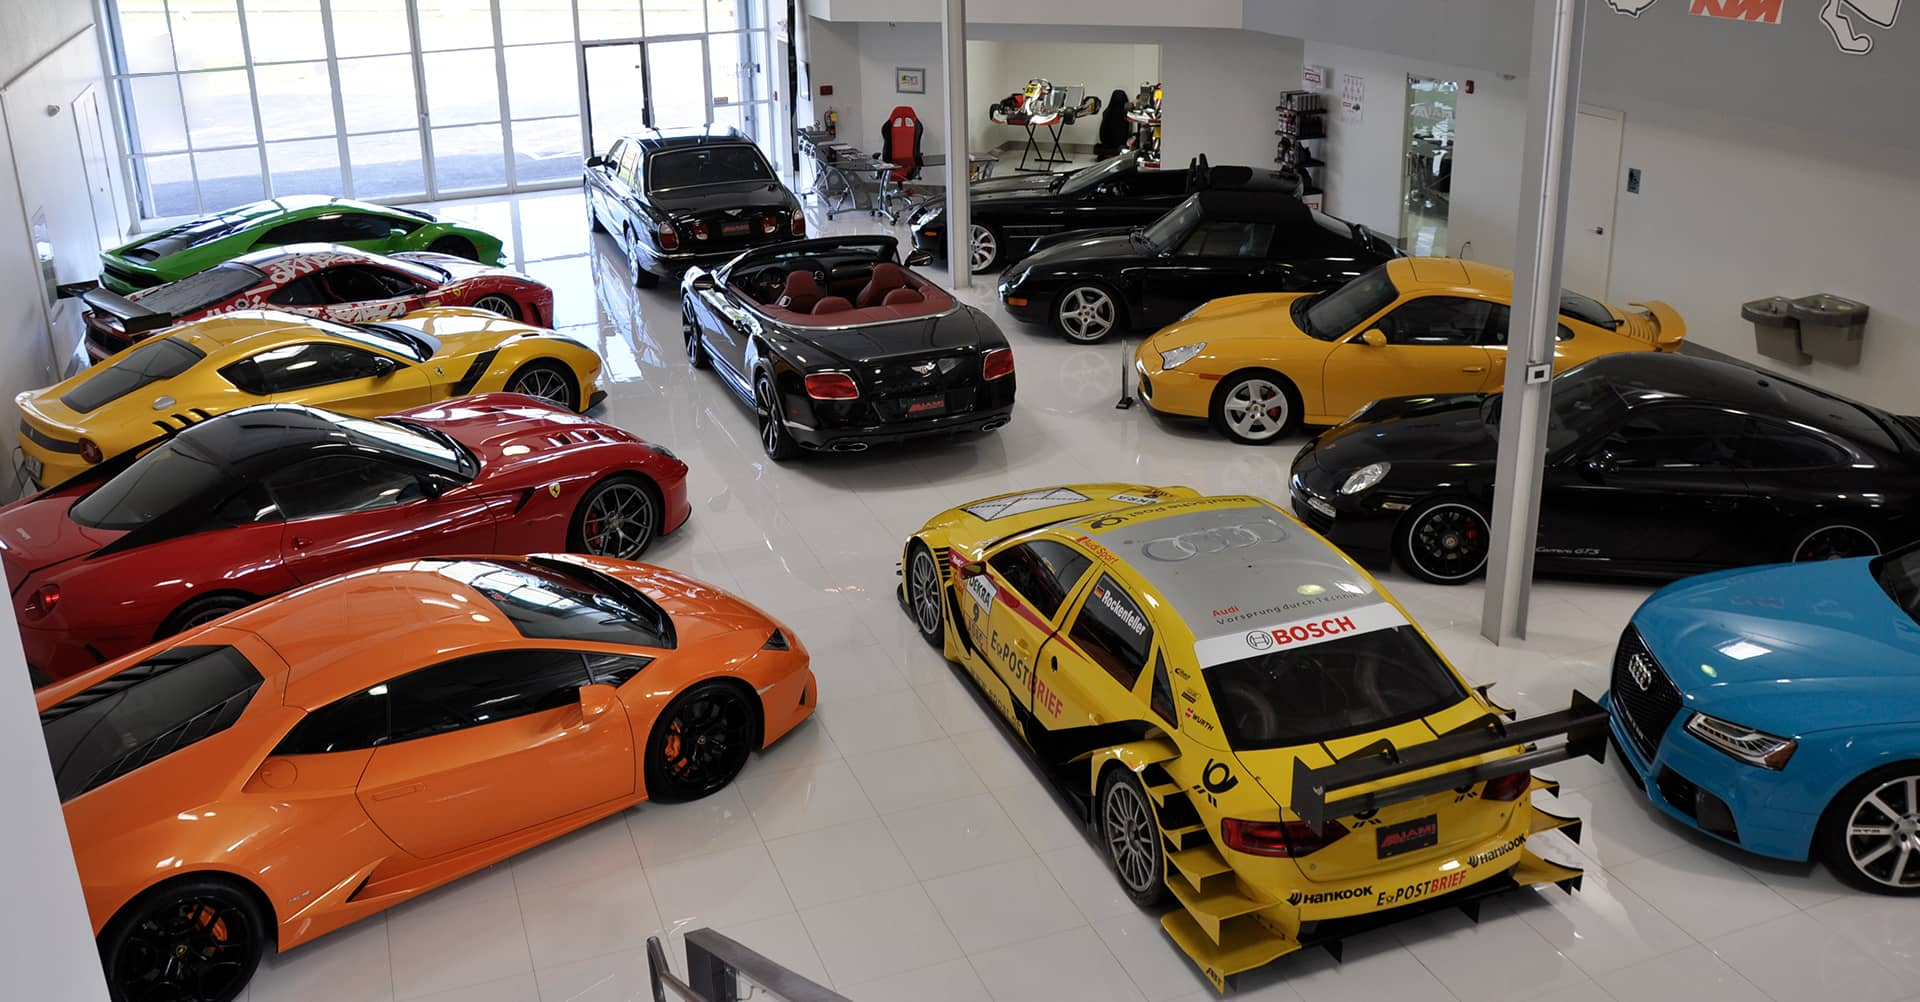 Miami Used Car Dealers Lovely Miami Motorcar Used Exotic Cars for Sale Miami Beach Fl Dealer